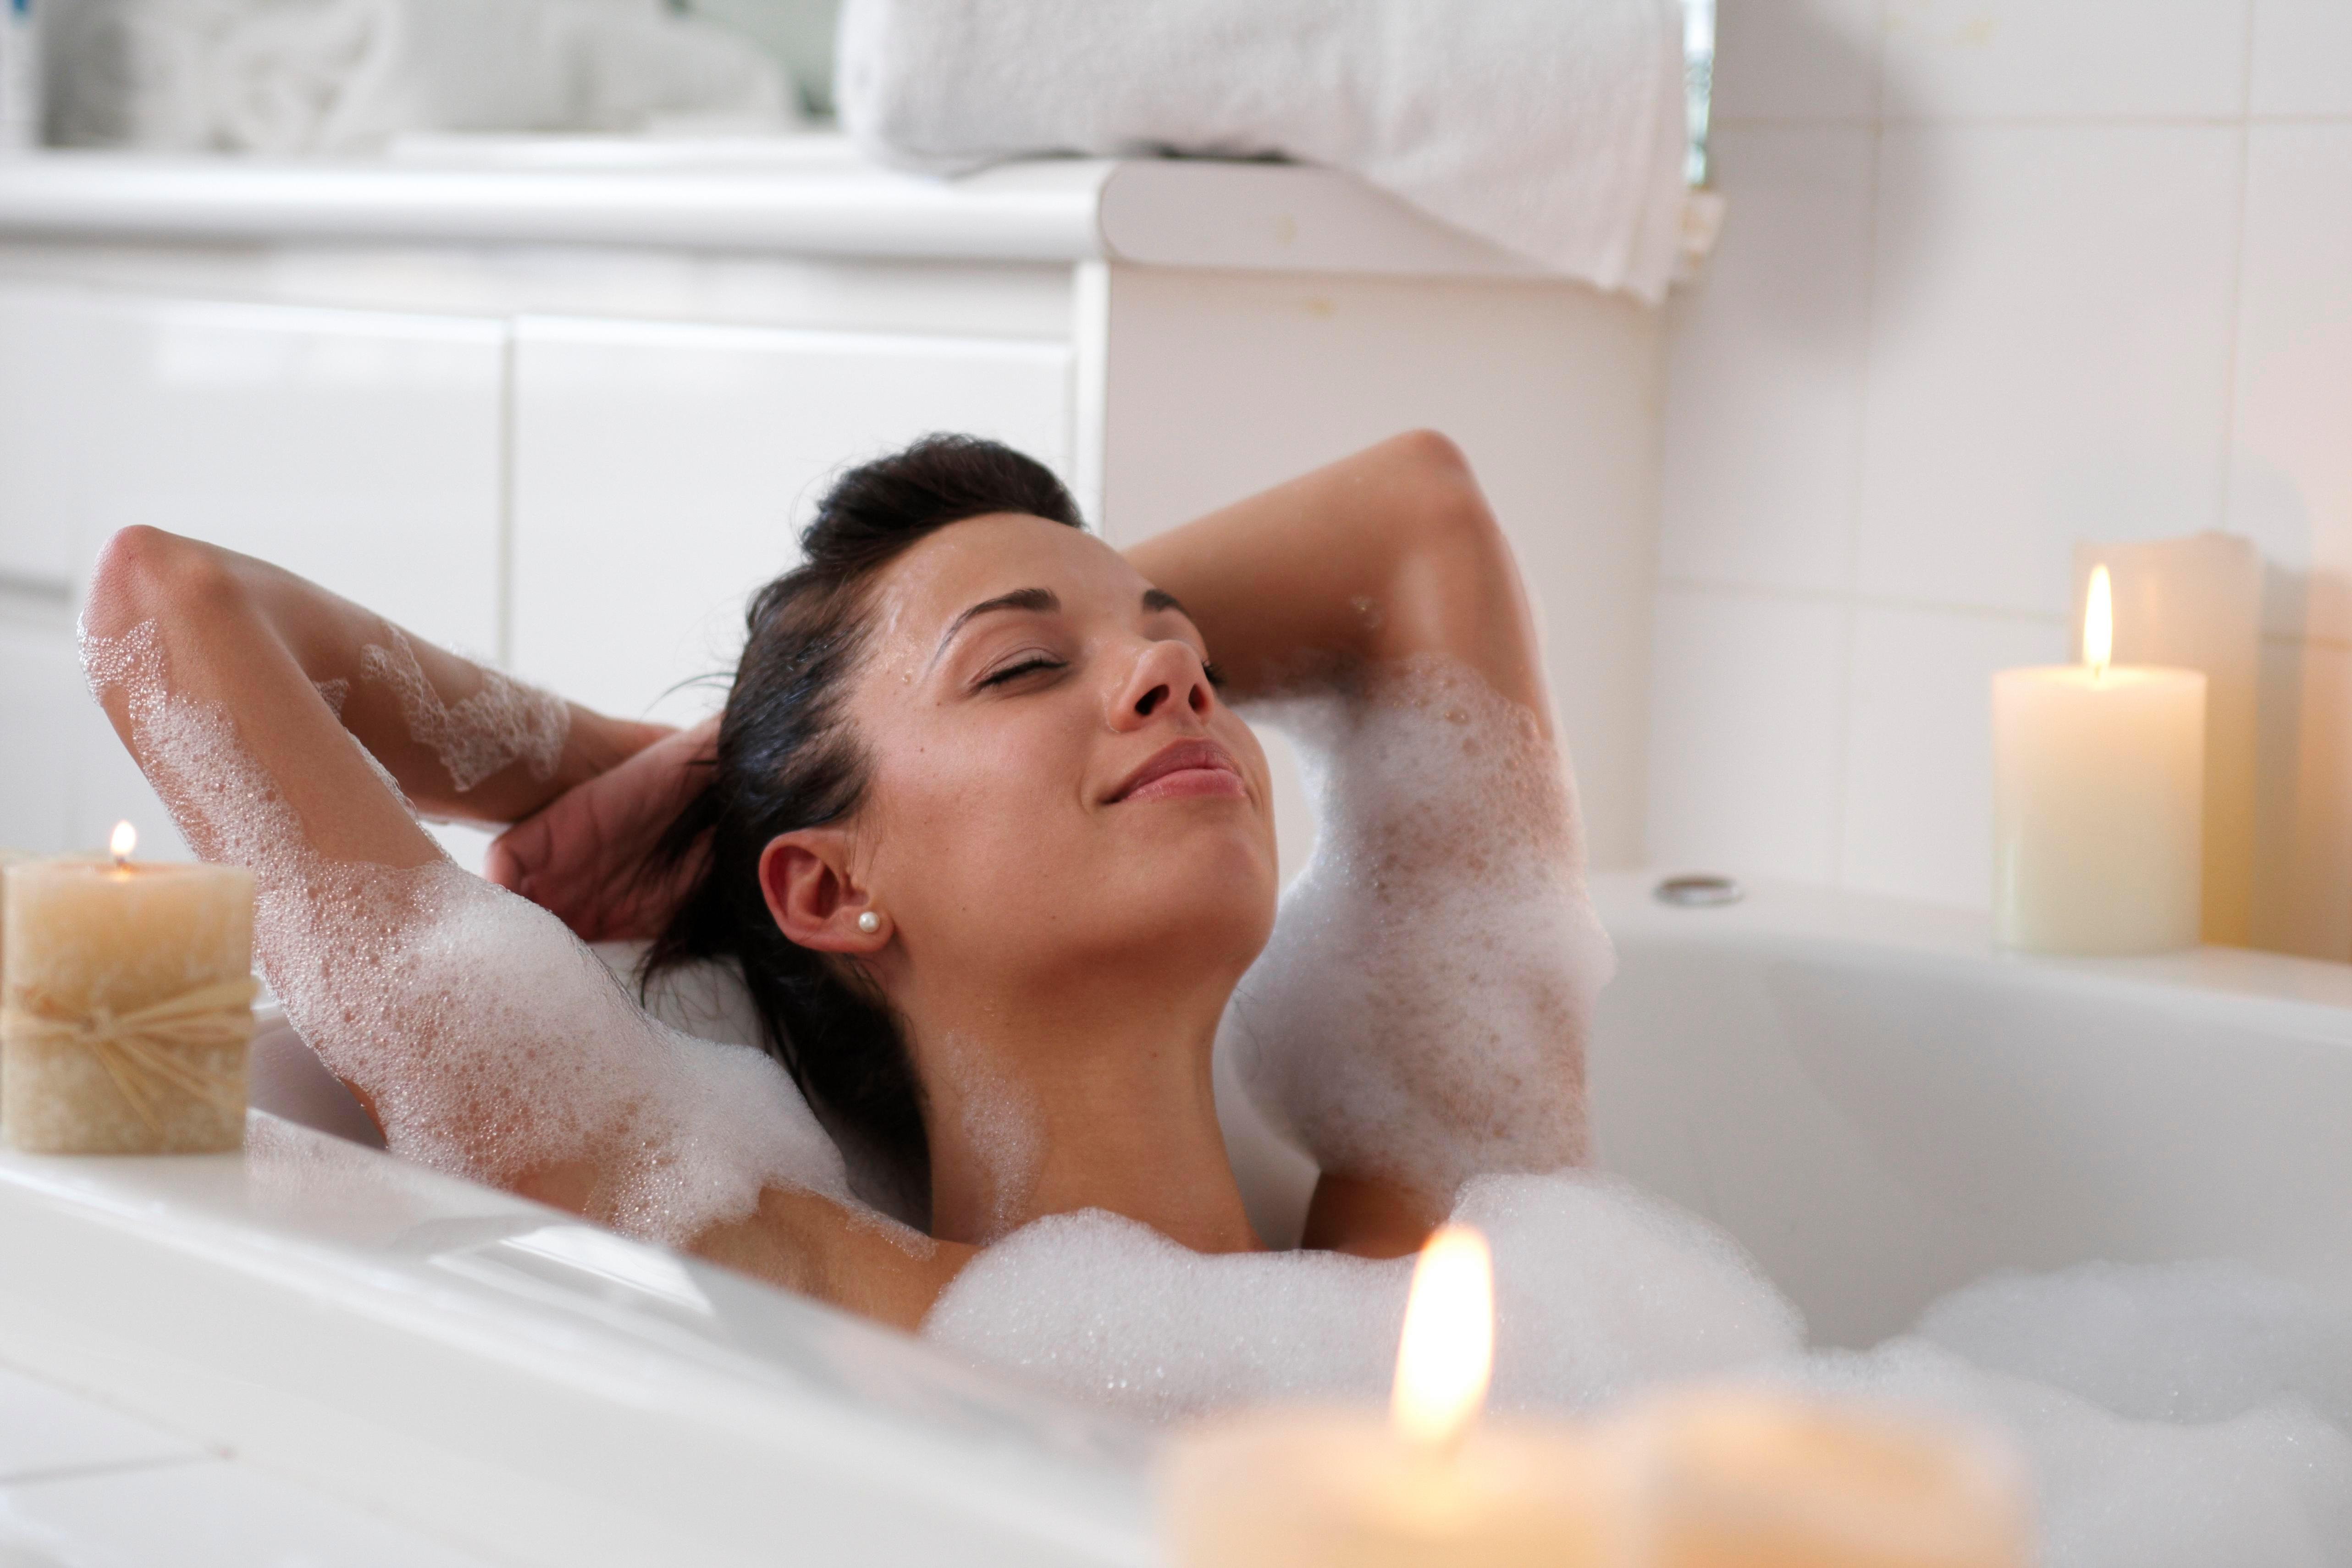 Taking a long hot bath can burn as many calories as a 30-minute walk, according to science